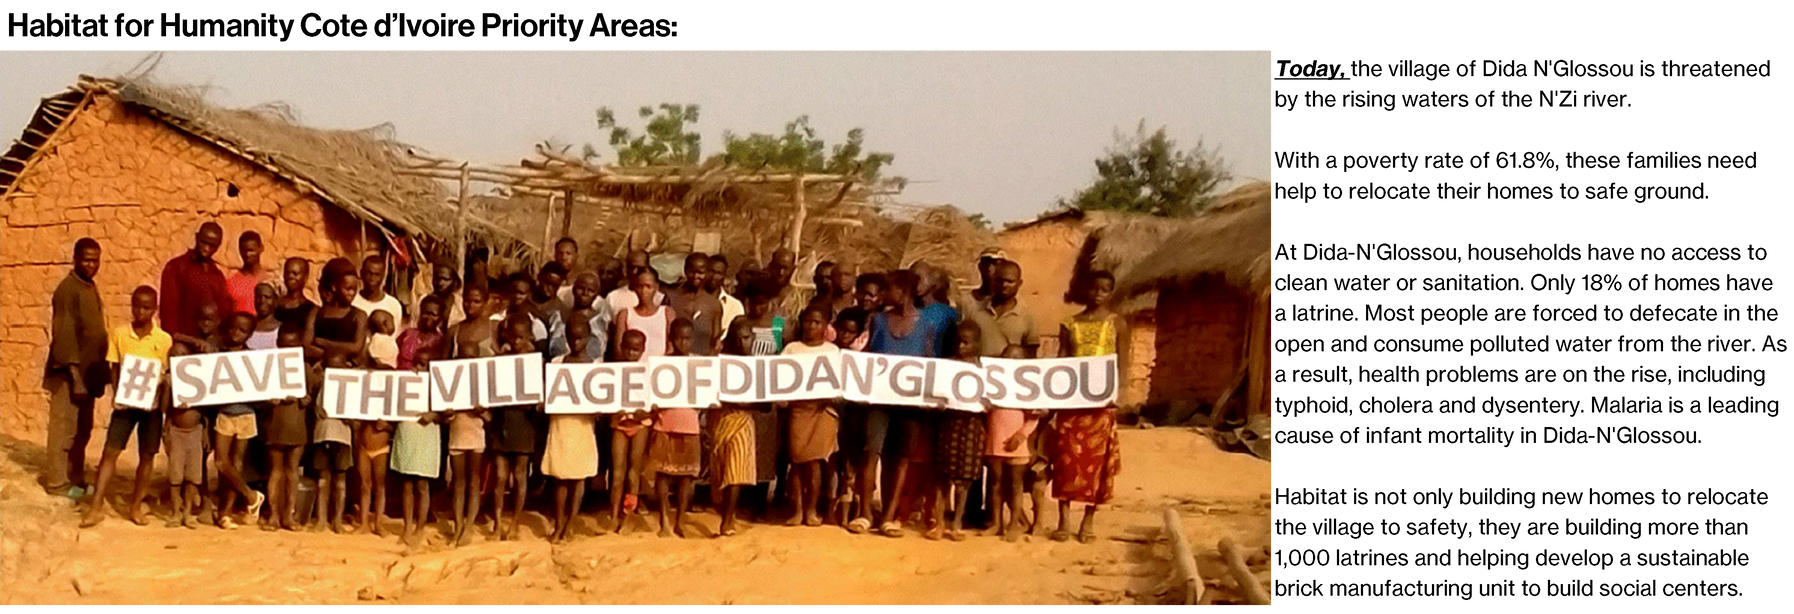 Cote d'Ivoire current project with text.